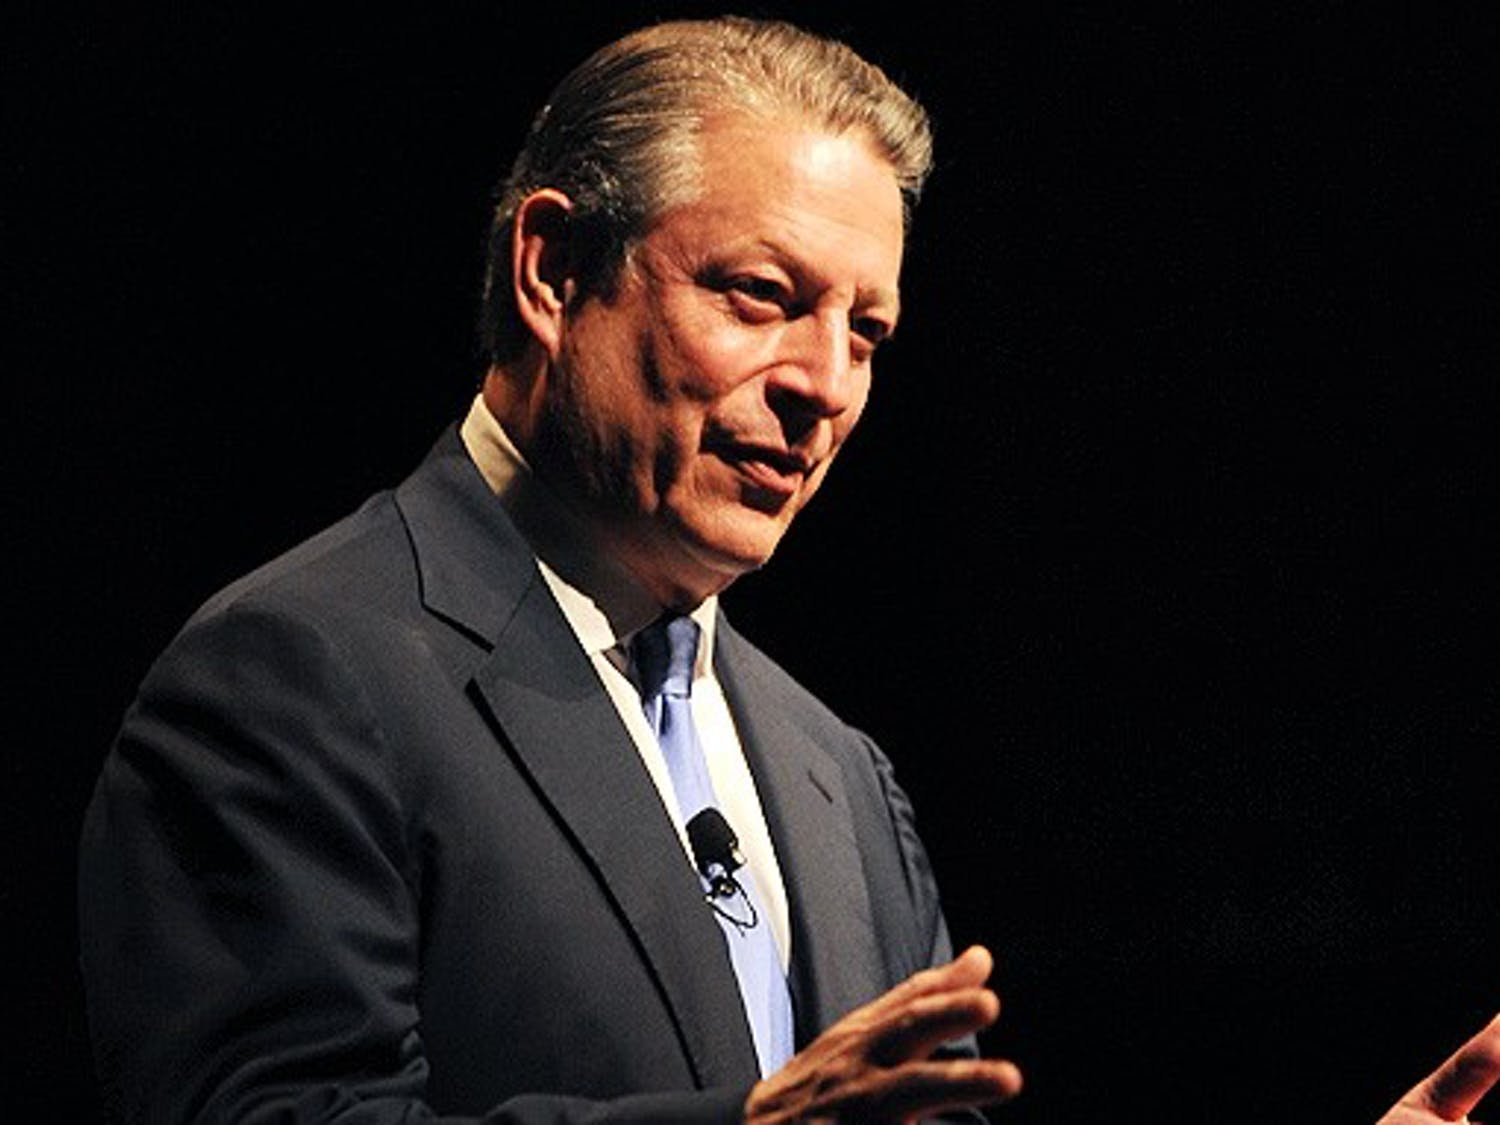 Former Vice President Al Gore emphasizes the climate change movement as a moral issue during a speech in Page Auditorium Thursday night. Gore cited the lack of political will as the major obstacle of climate reform.